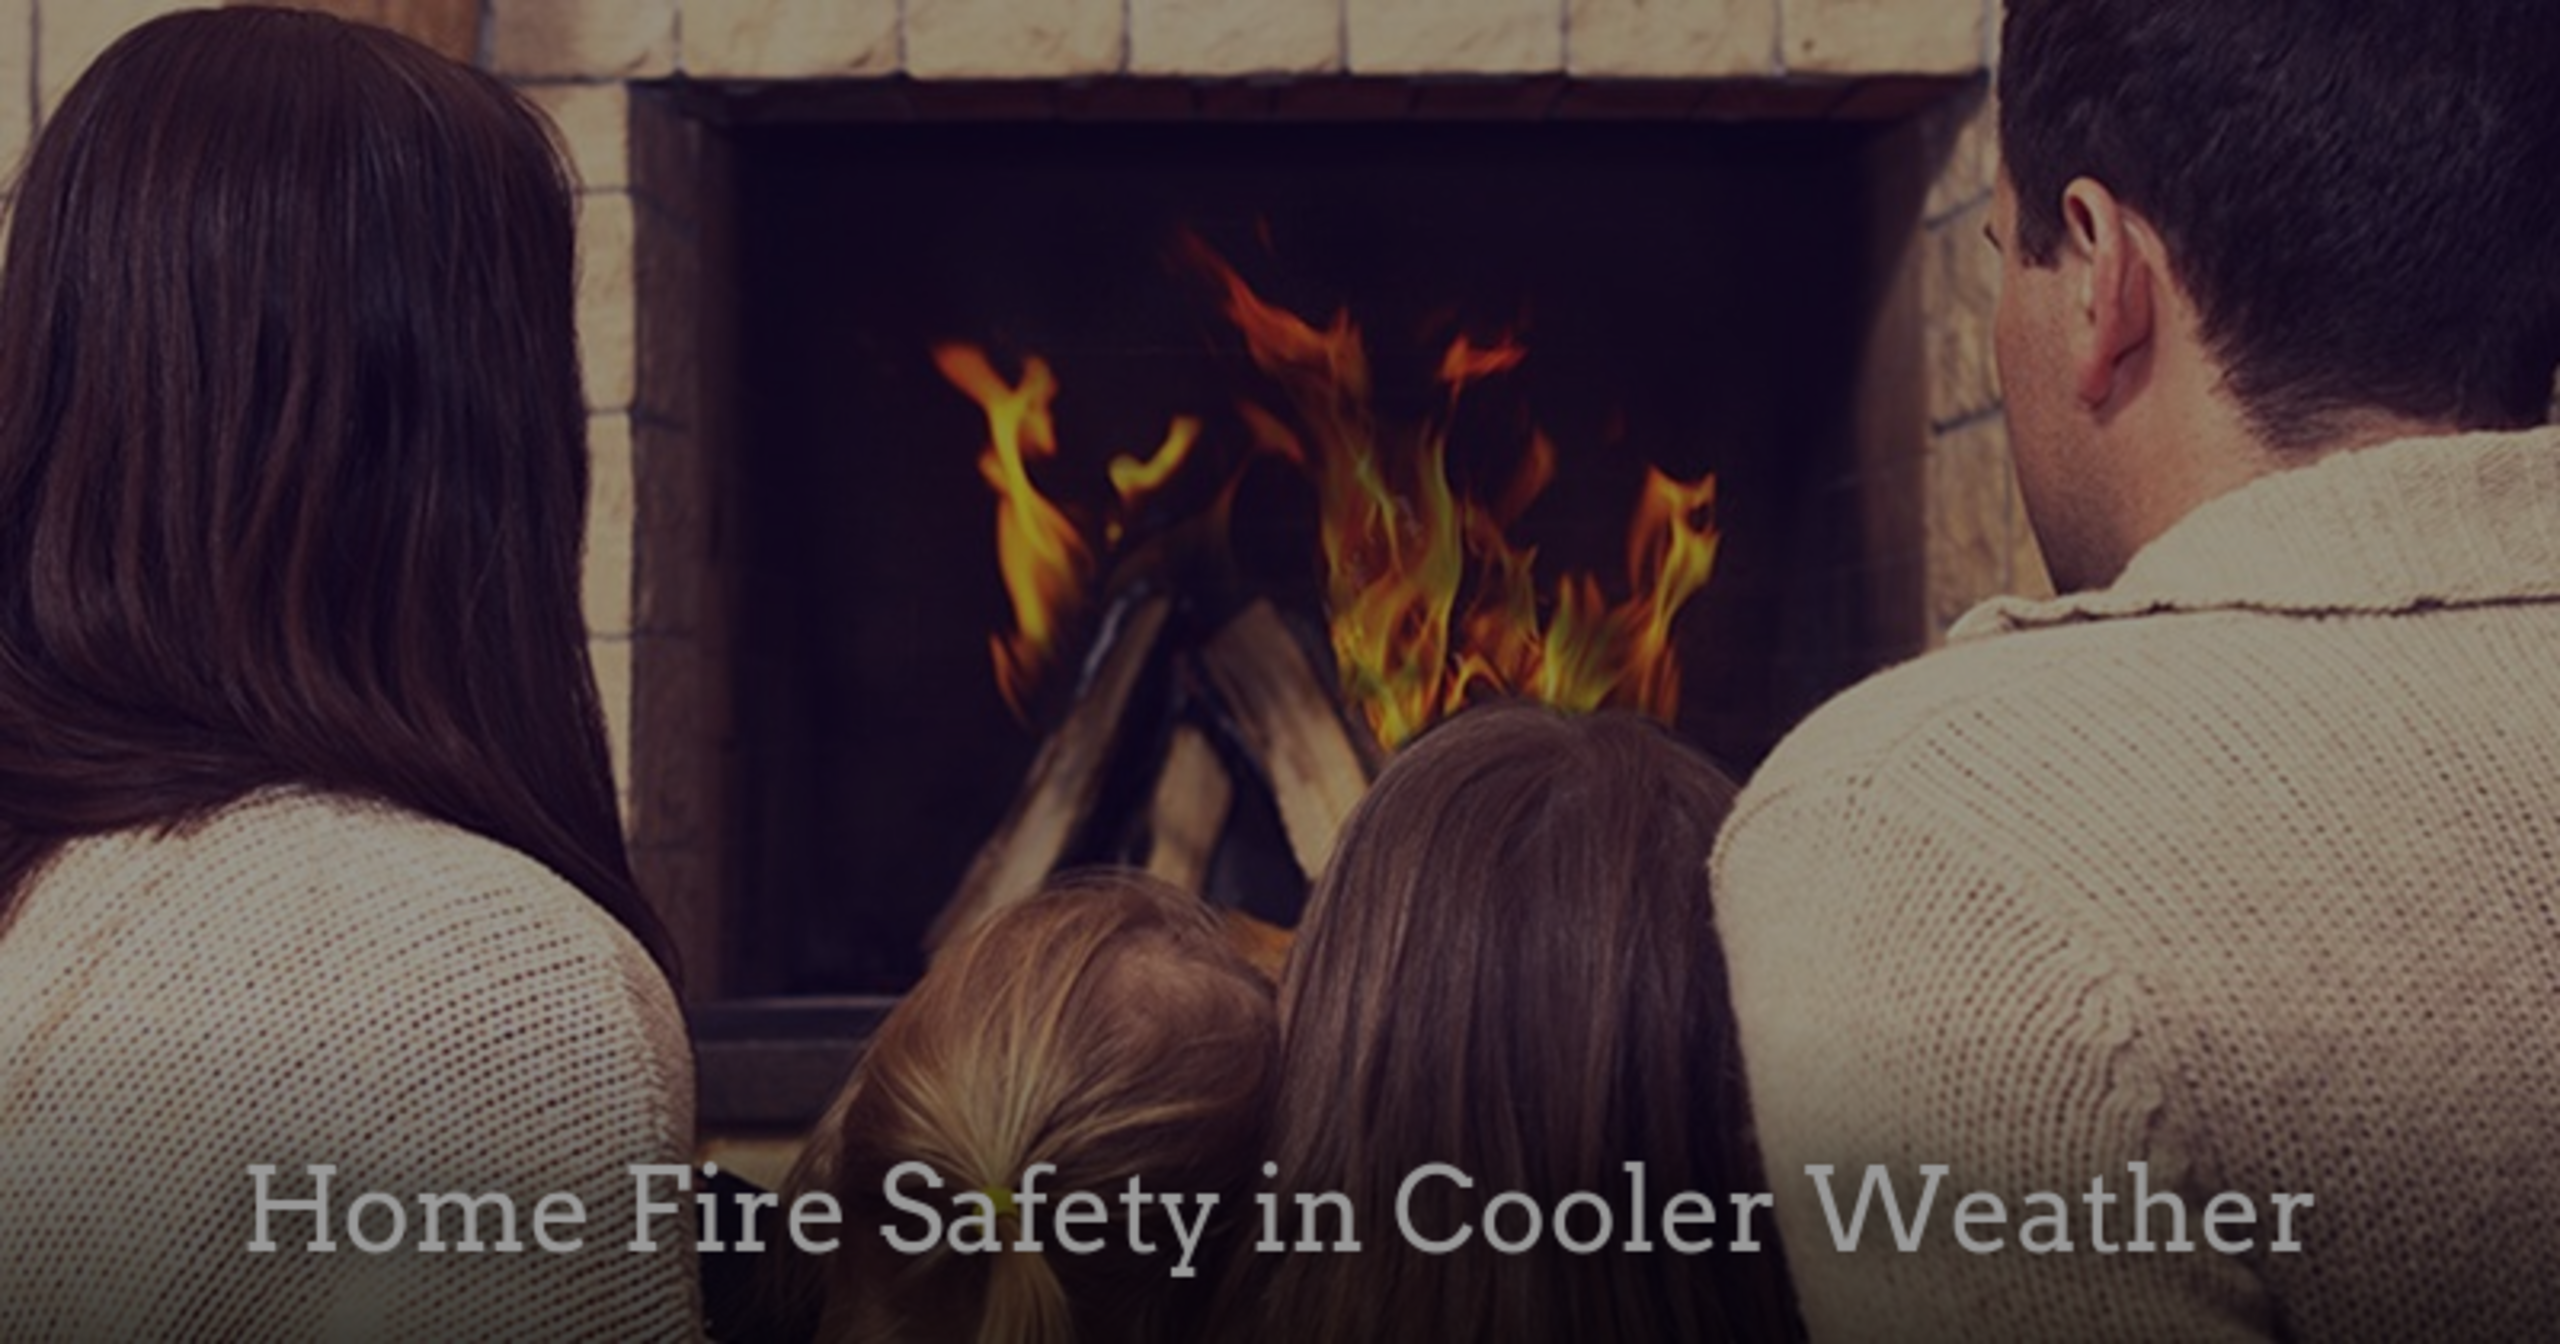 Home Fire Safety in Cooler Weather